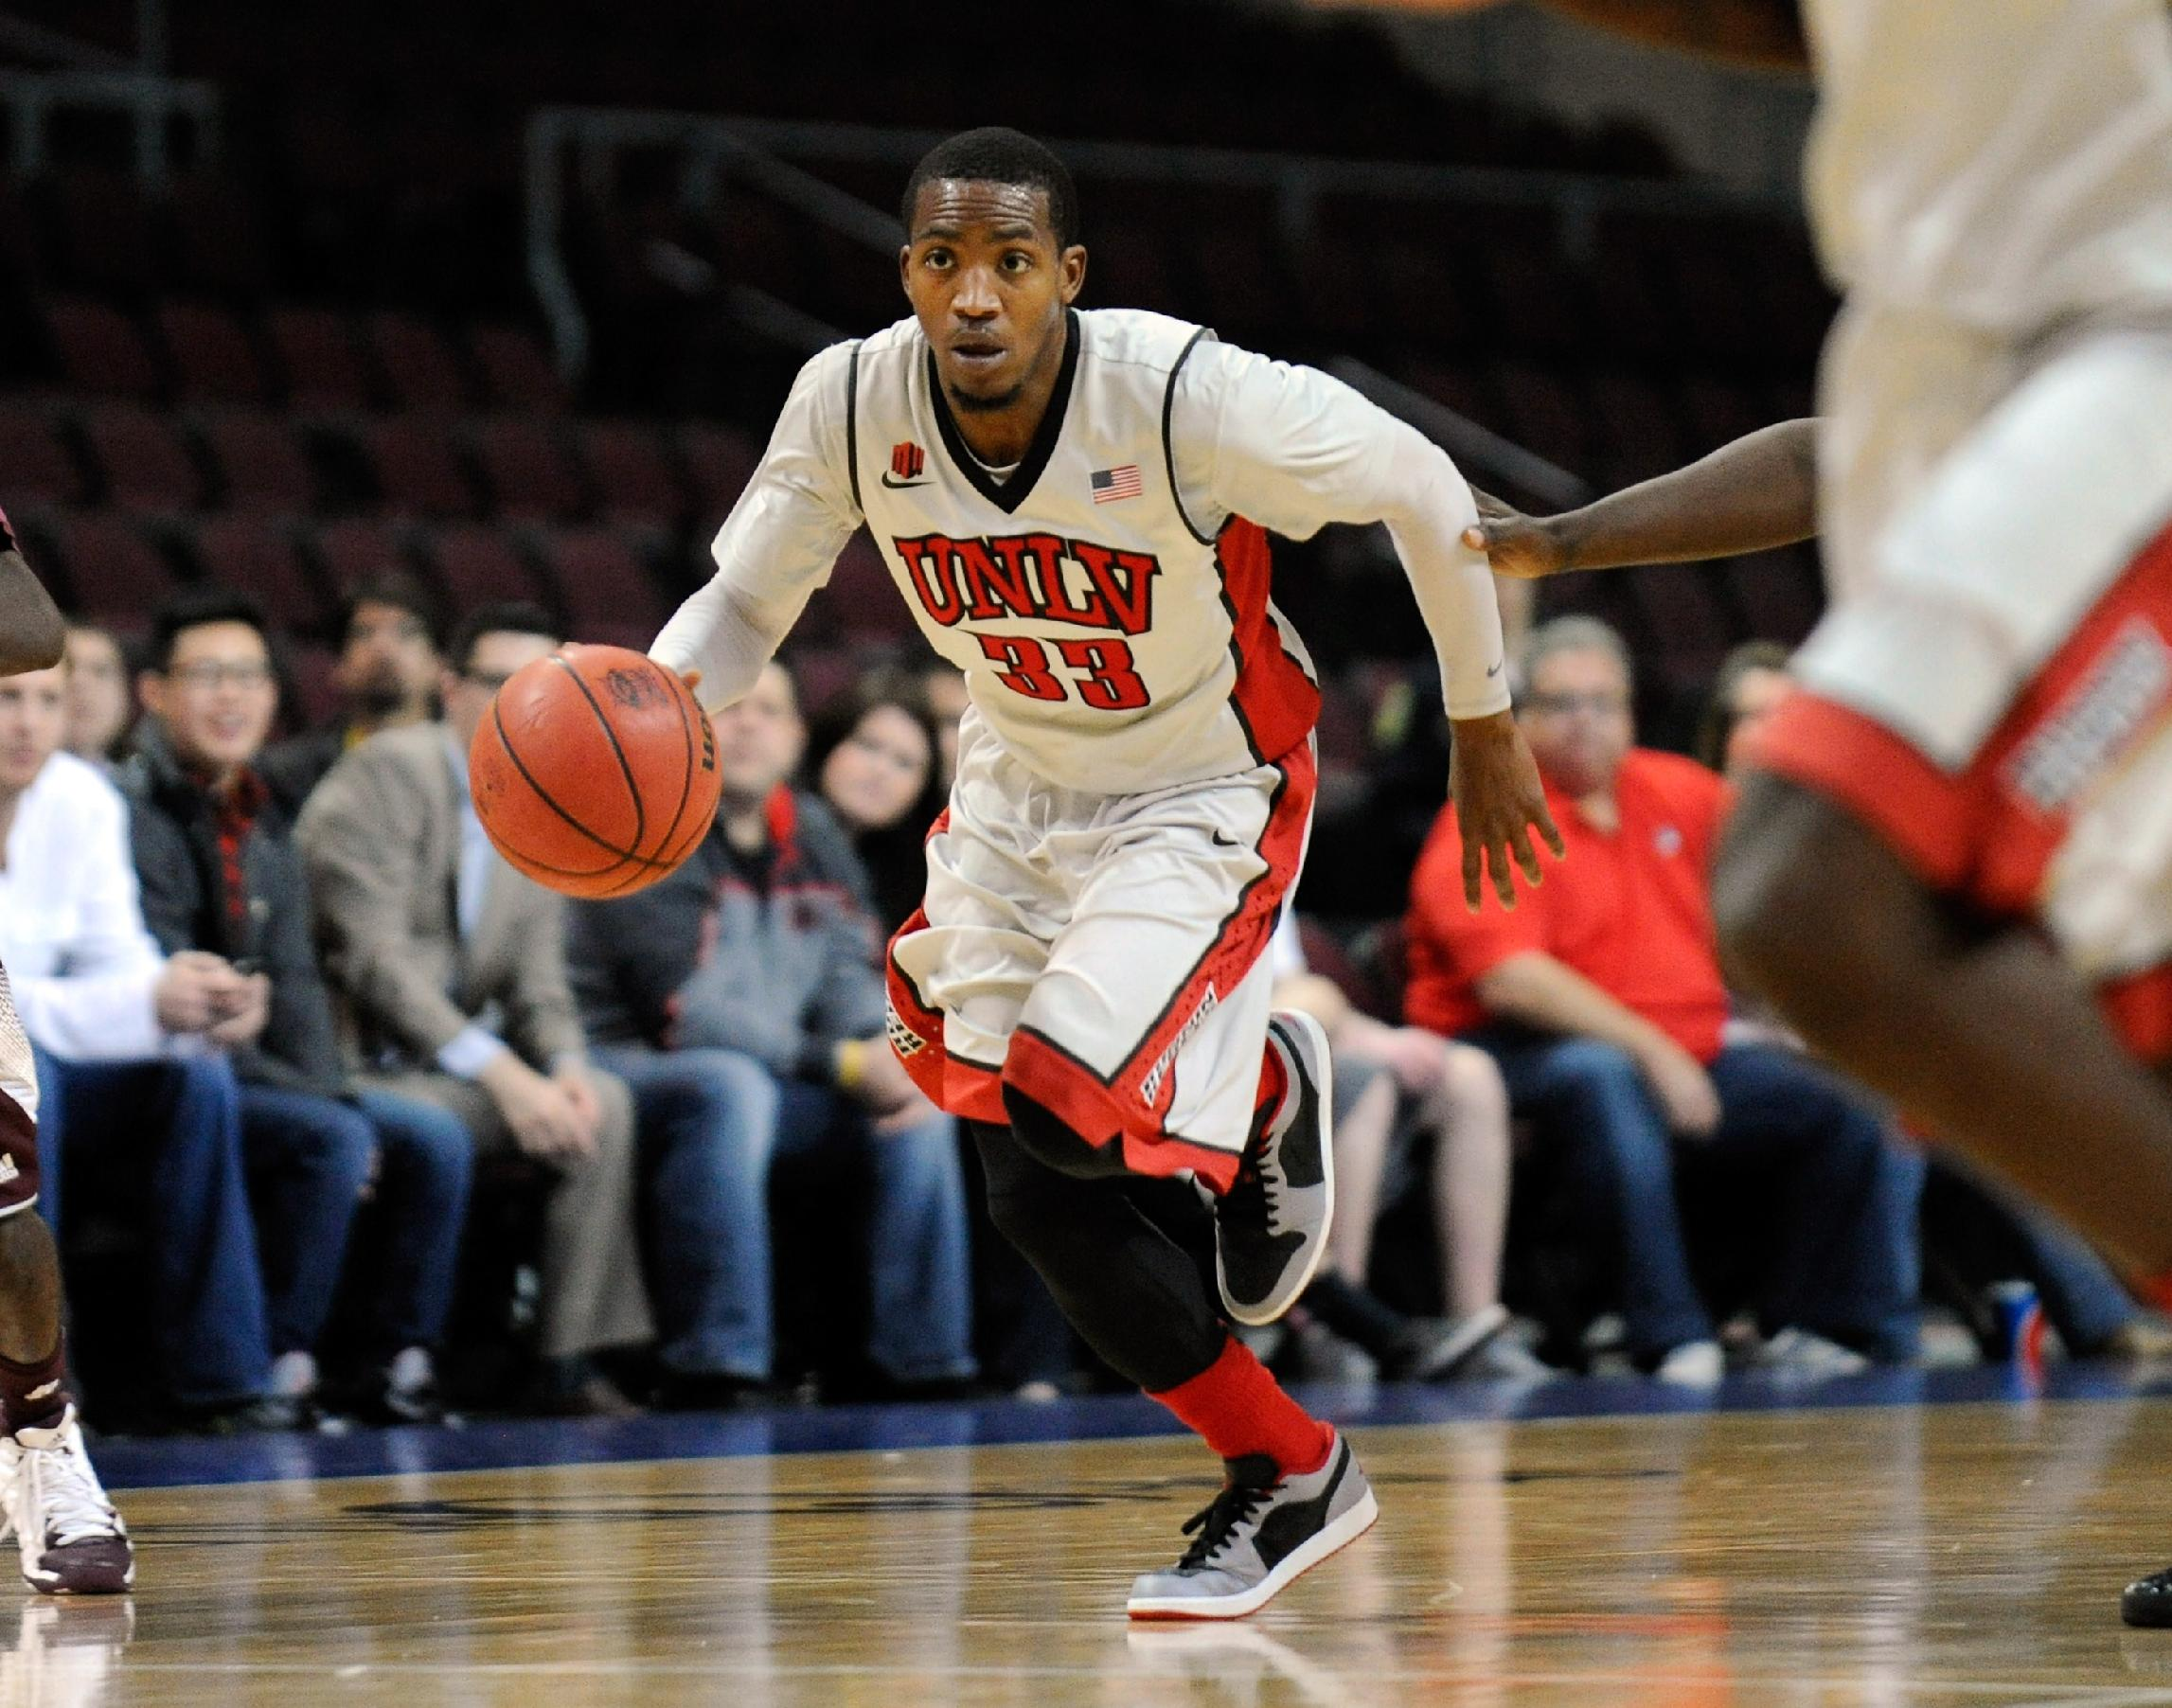 UNLV's Deville Smith (33) drives the ball up the court during an NCAA college basketball game against Mississippi State on Monday, Dec. 23, 2013, in Las Vegas. Smith was named the tournament MVP. UNLV won 82-66